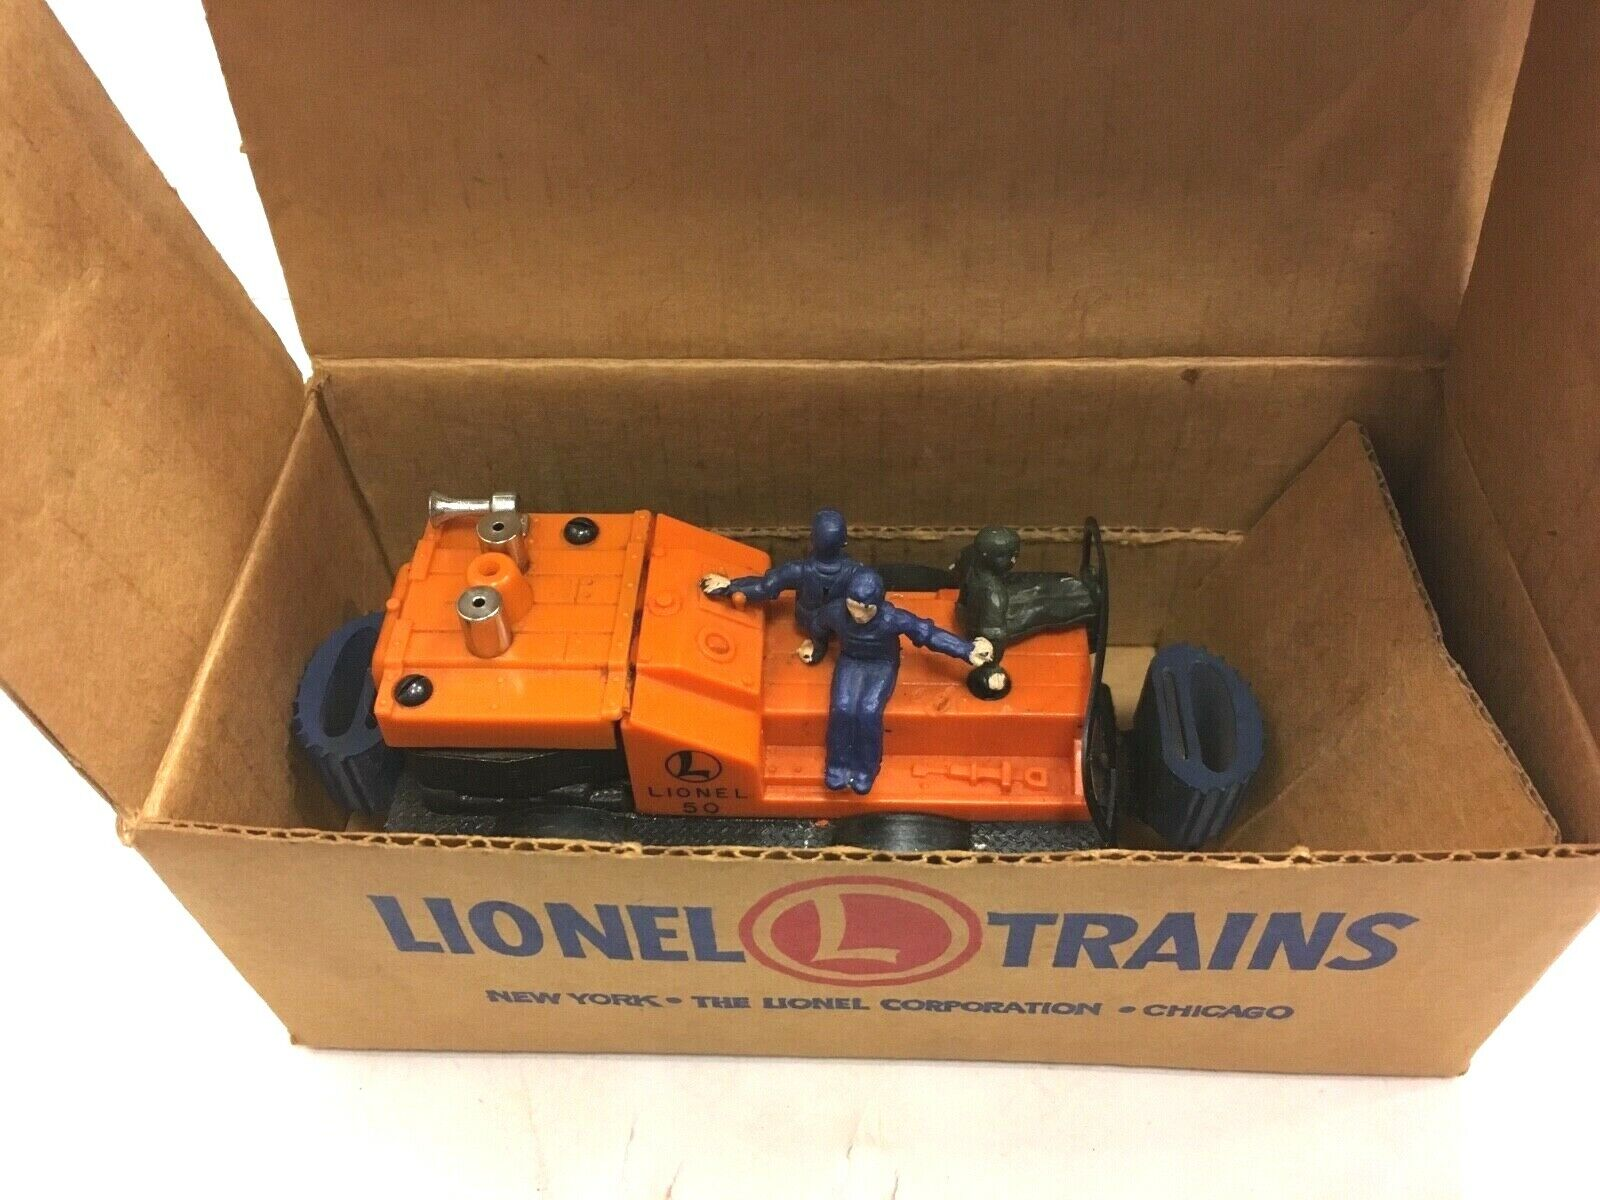 VINTAGE LIONEL TRAIN GANG CAR IN THE BOX FREE SHIPPING